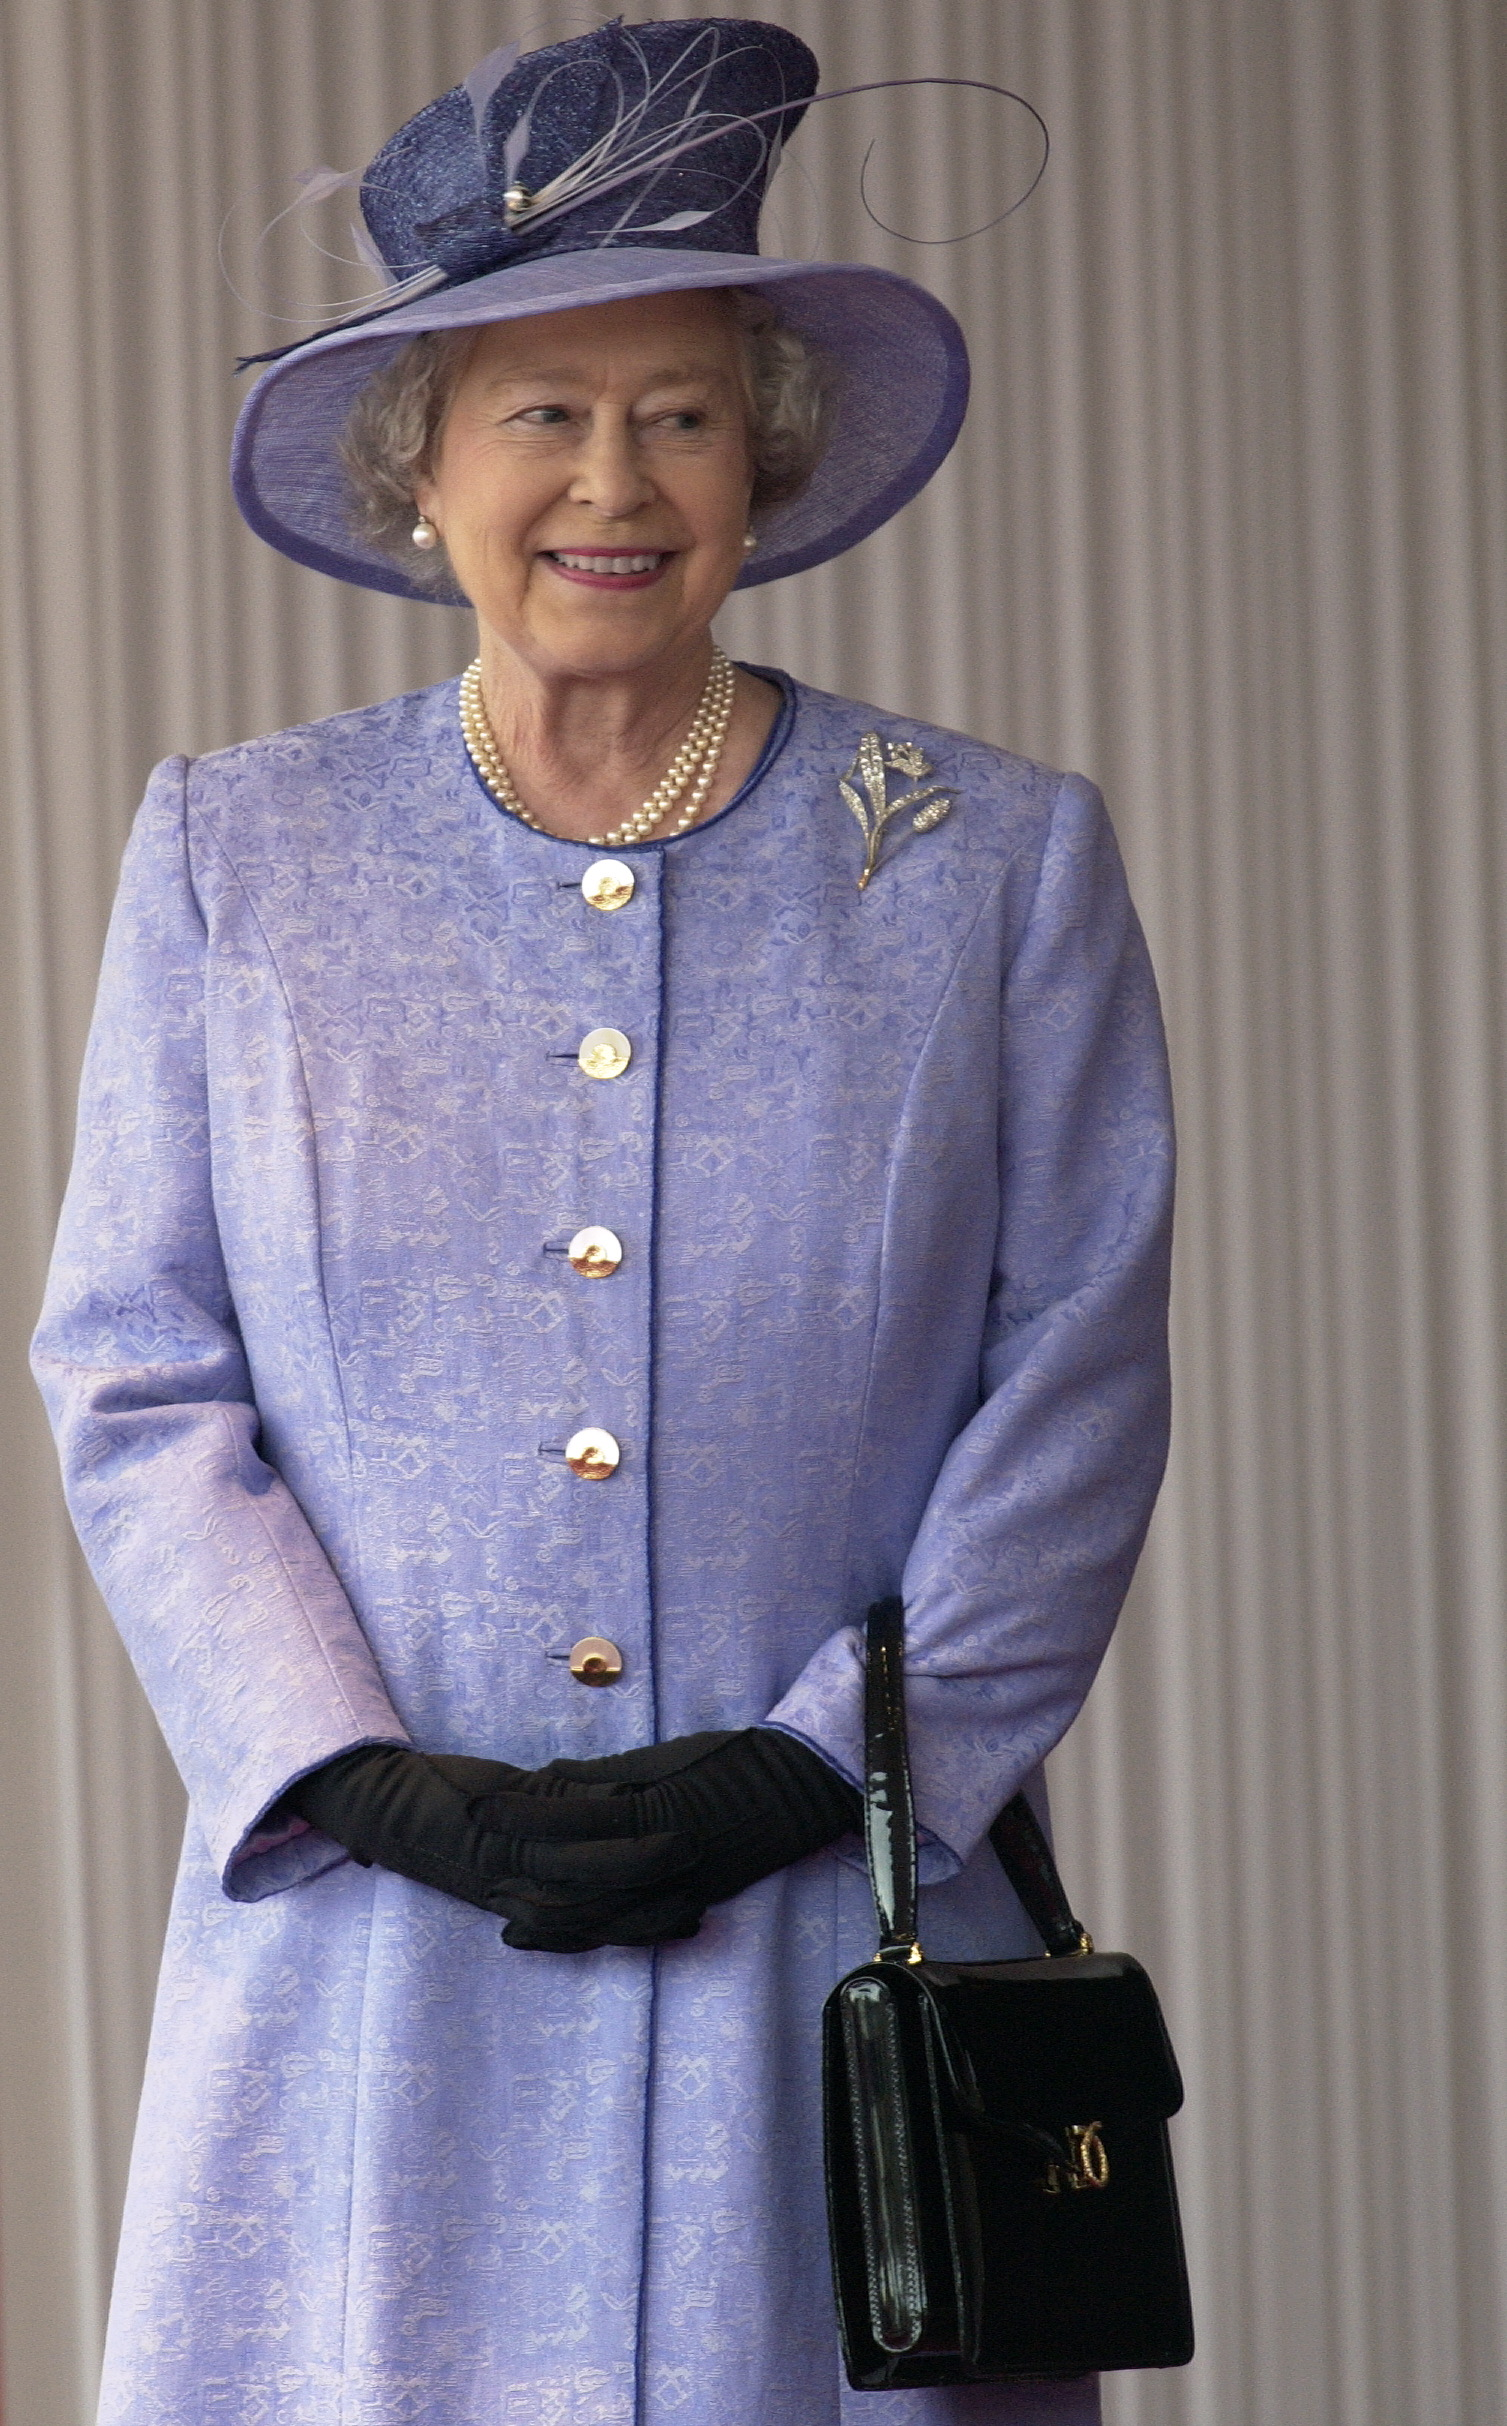 LONDON, UNITED KINGDOM - NOVEMBER 19:  Queen Elizabeth Ll Smiling During The State Visit Of The American President At Buckingham Palace.  The Queen Is Wearing A Mauve Coat With Matching Hat Which She Has Accessorized With Black Gloves And A Black Launer Handbag.  (Photo by Tim Graham Photo Library via Getty Images)